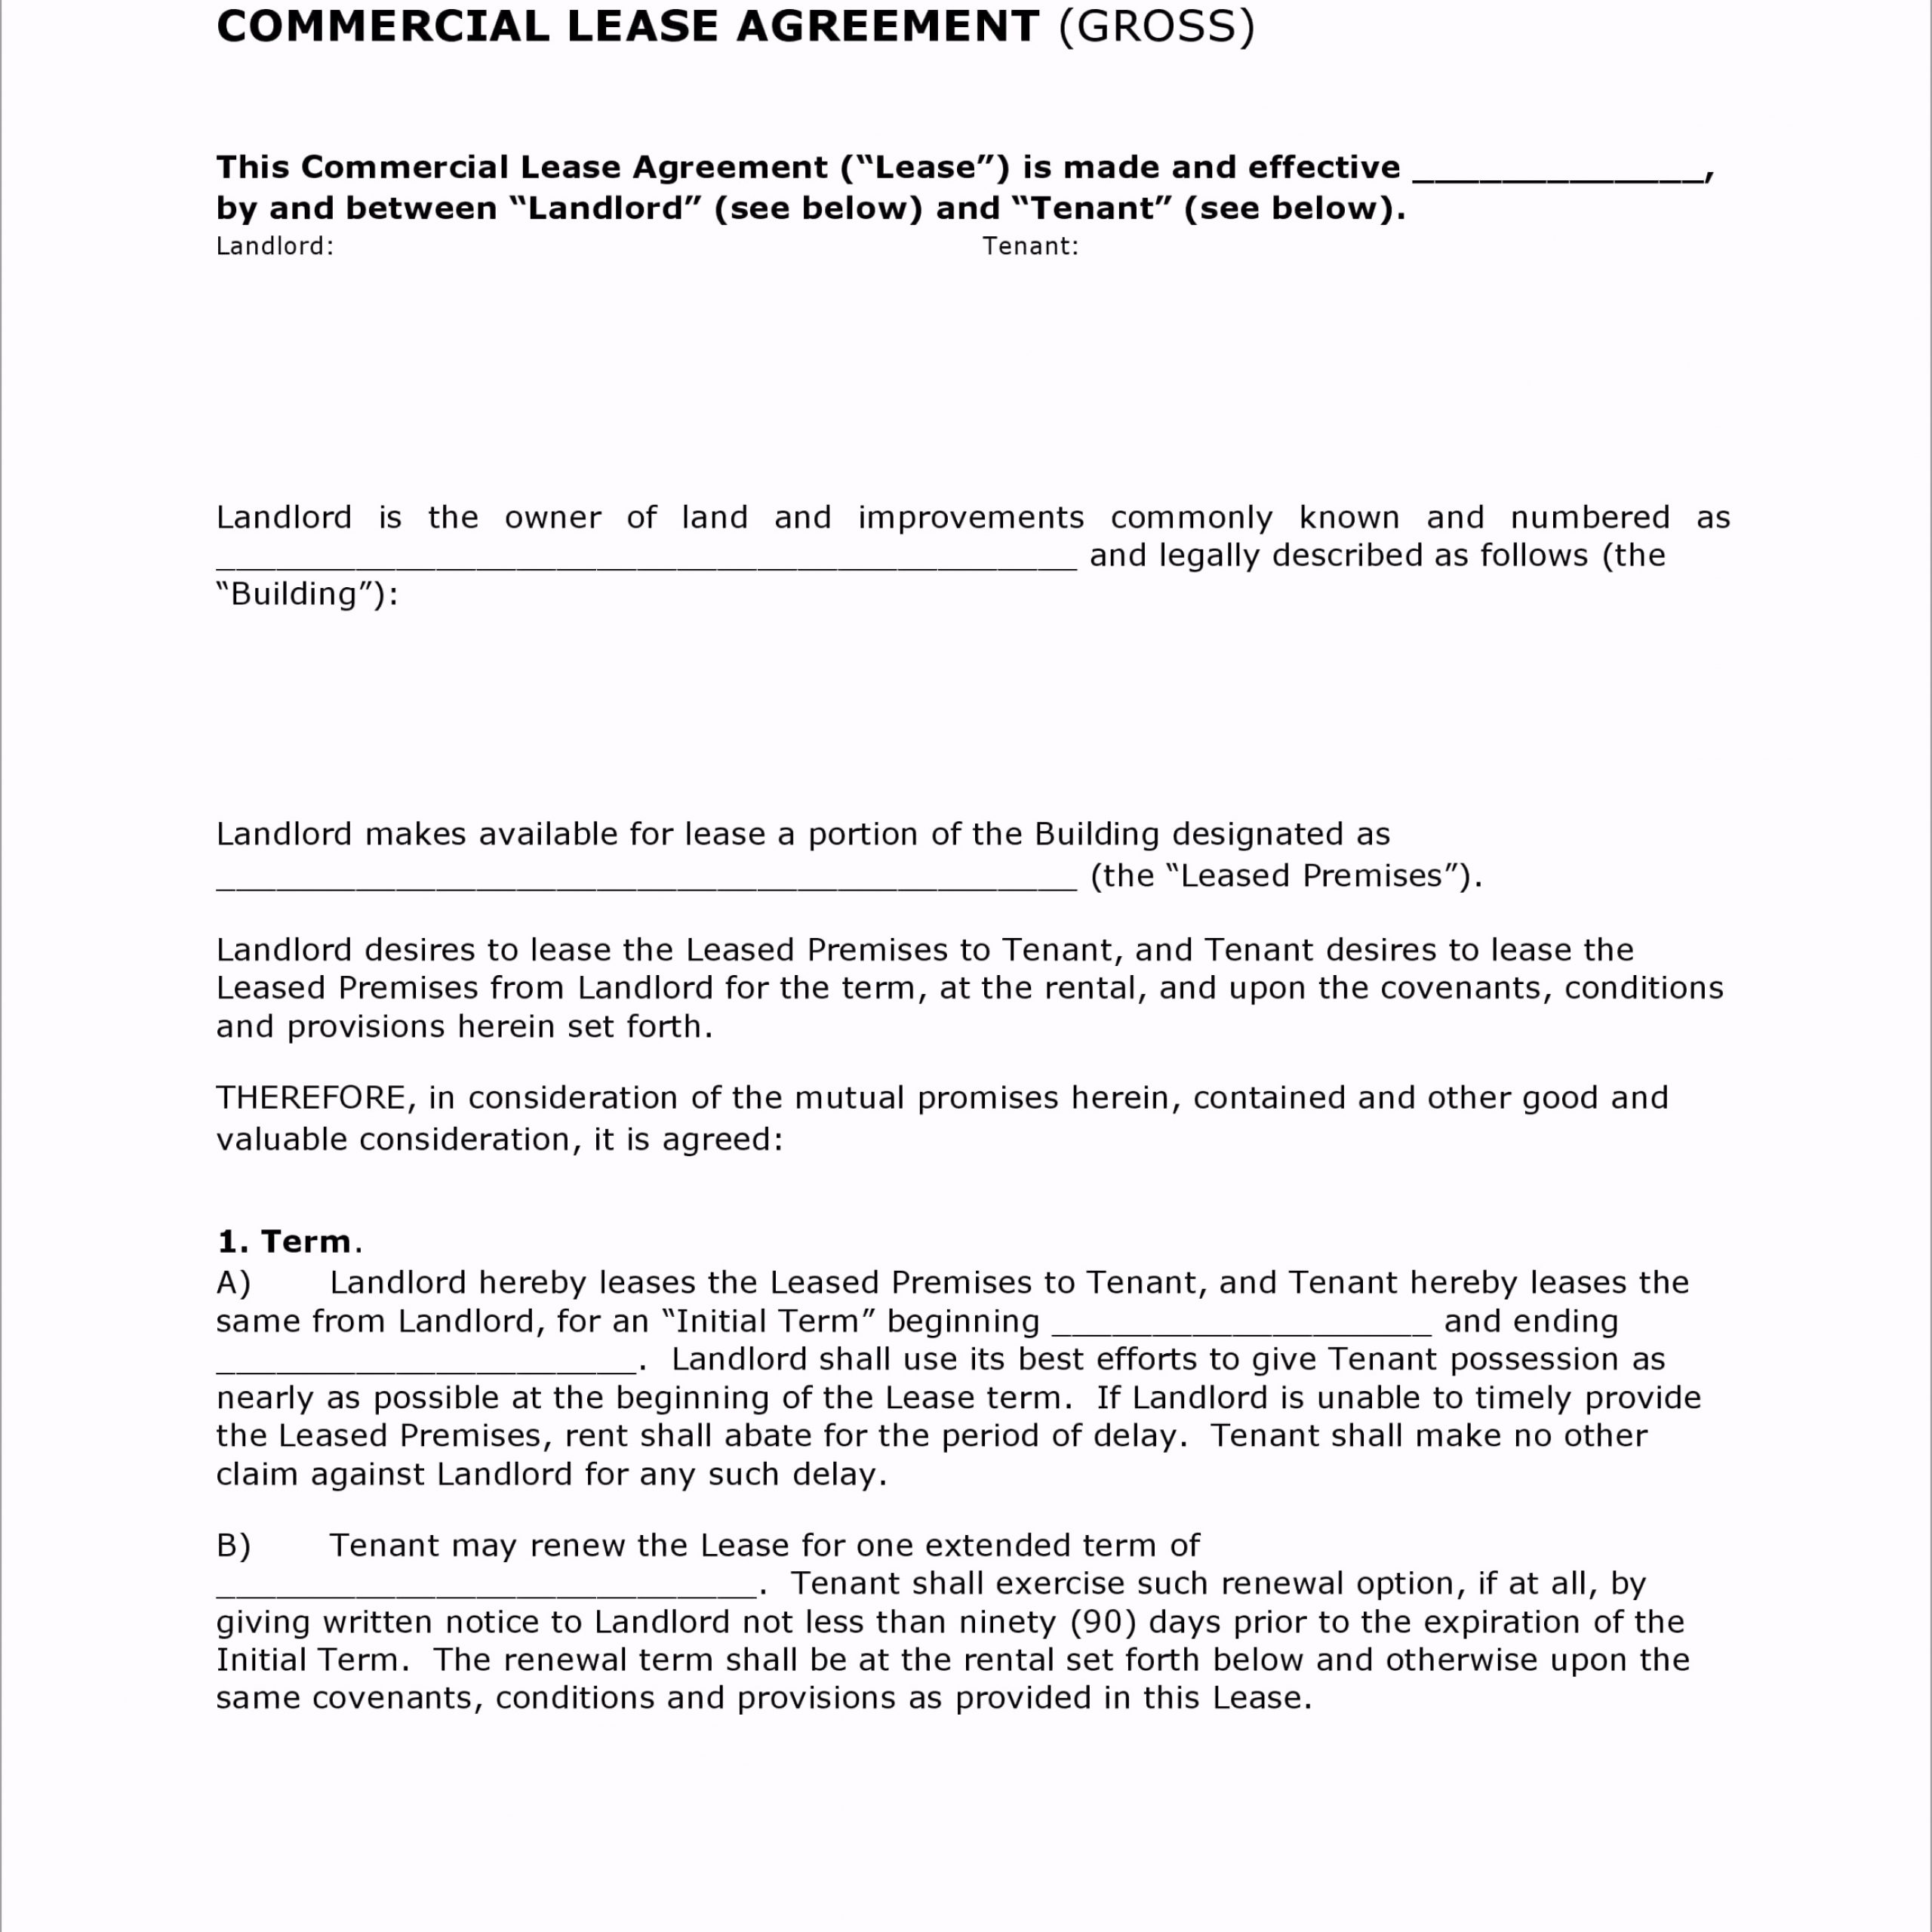 General Gross mercial Lease Agreement tpyoo